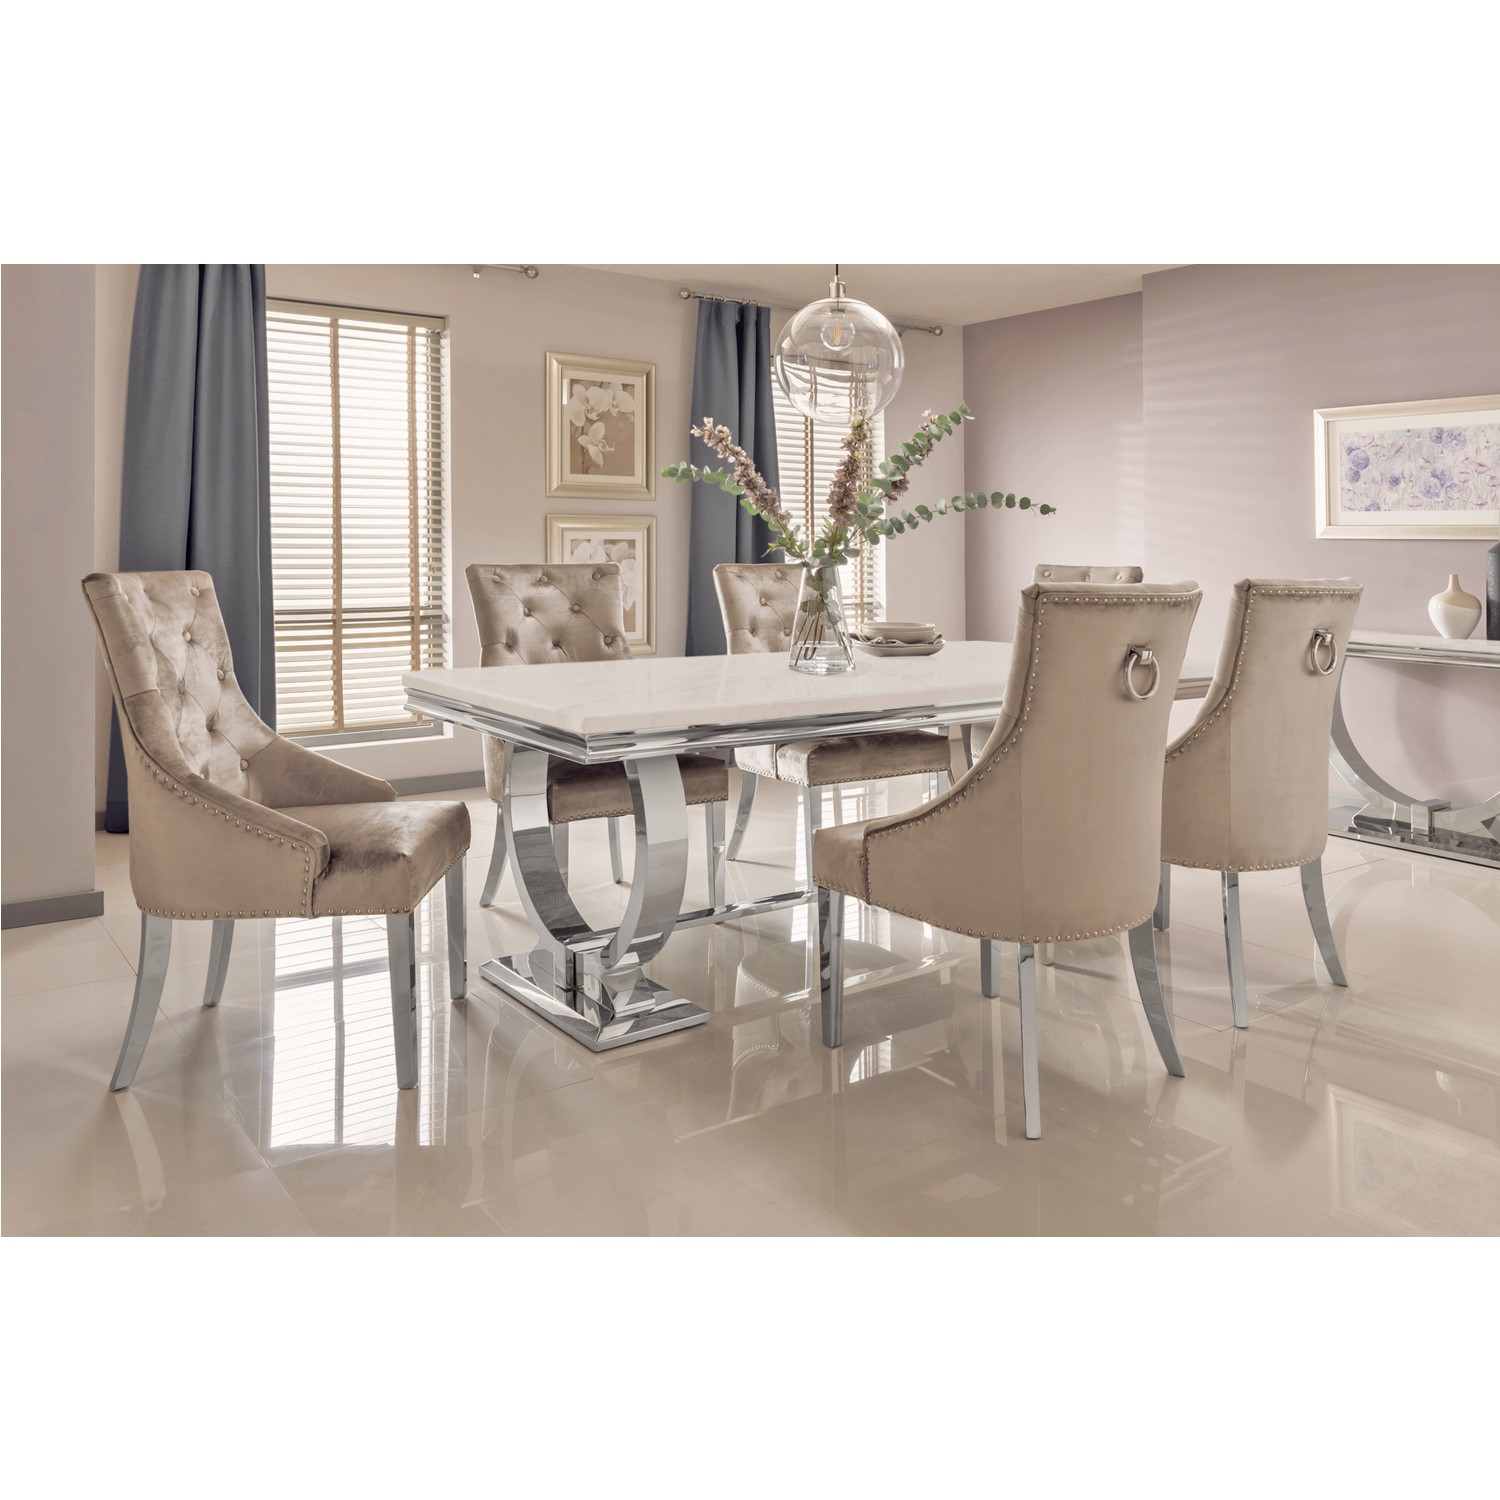 Cream Marble Dining Set With 200cm Table Champagne Velvet Chairs Seats 6 Arianna Furniture123